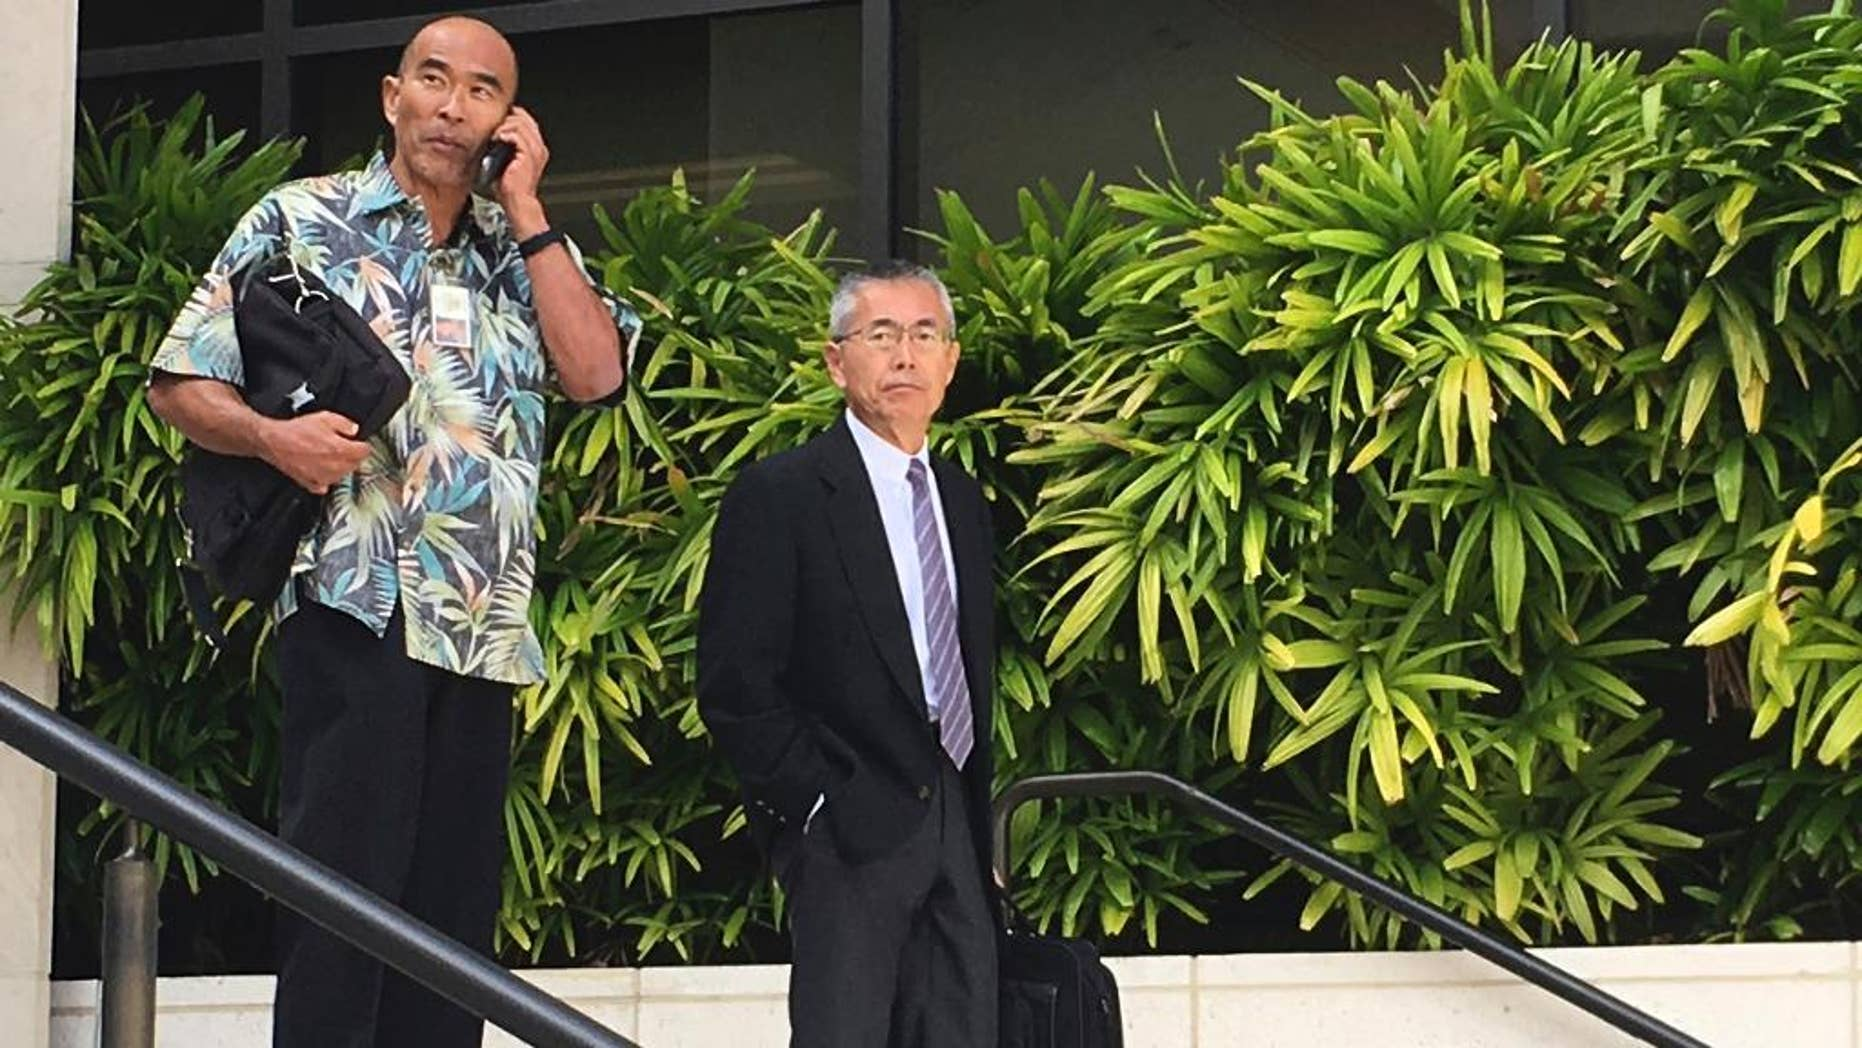 FILE- In this Nov. 1, 2016, file photo, Kauai Community Correctional Center Warden Neal Wagatsuma, left, uses a cellphone while walking out of U.S. District Court in Honolulu with Hawaii Deputy Attorney General Nelson Nabeta. After a week of deliberations, the jury on Tuesday, Dec. 20, voted unanimously in favor of defendants Neal Wagatsuma and the state of Hawaii in a lawsuit brought by a former jail social worker. (AP Photo/Jennifer Sinco Kelleher, File)